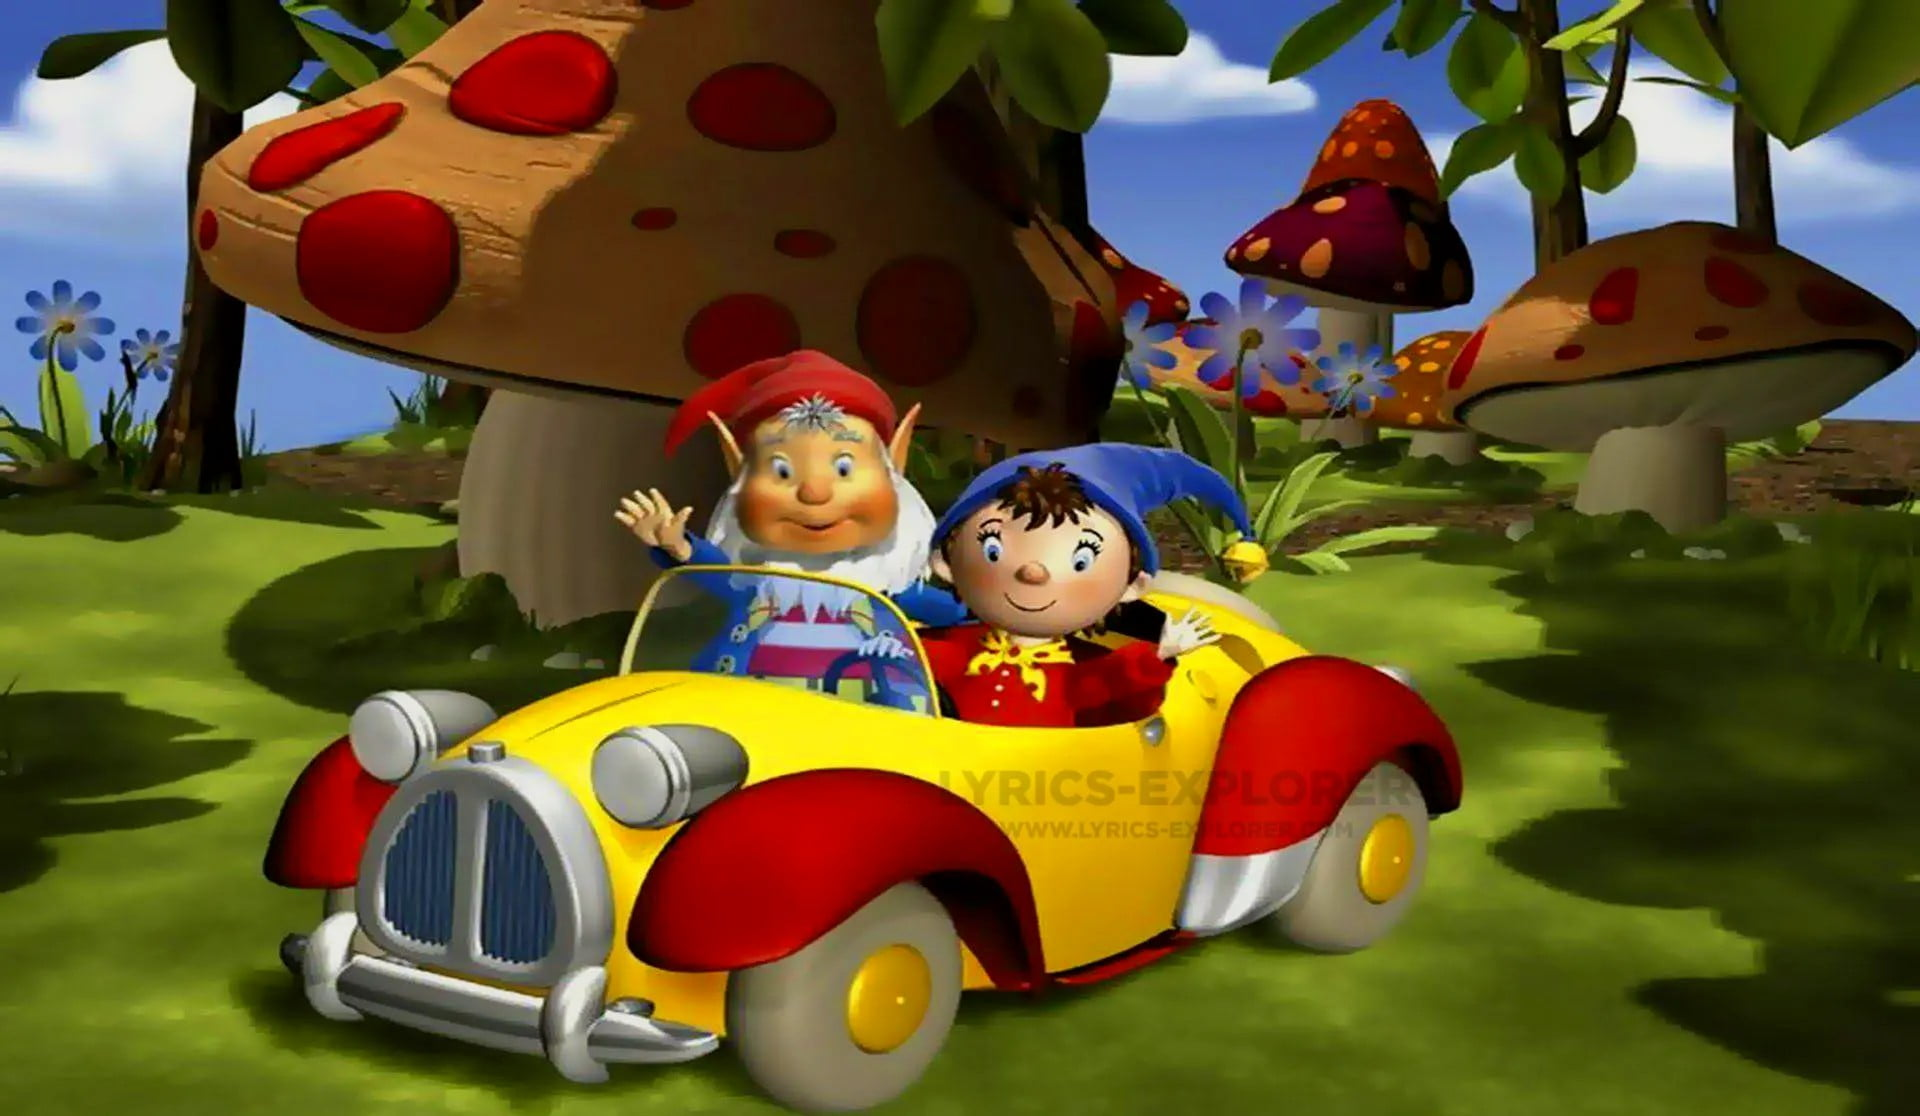 You are currently viewing Noddy title song lyrics in English